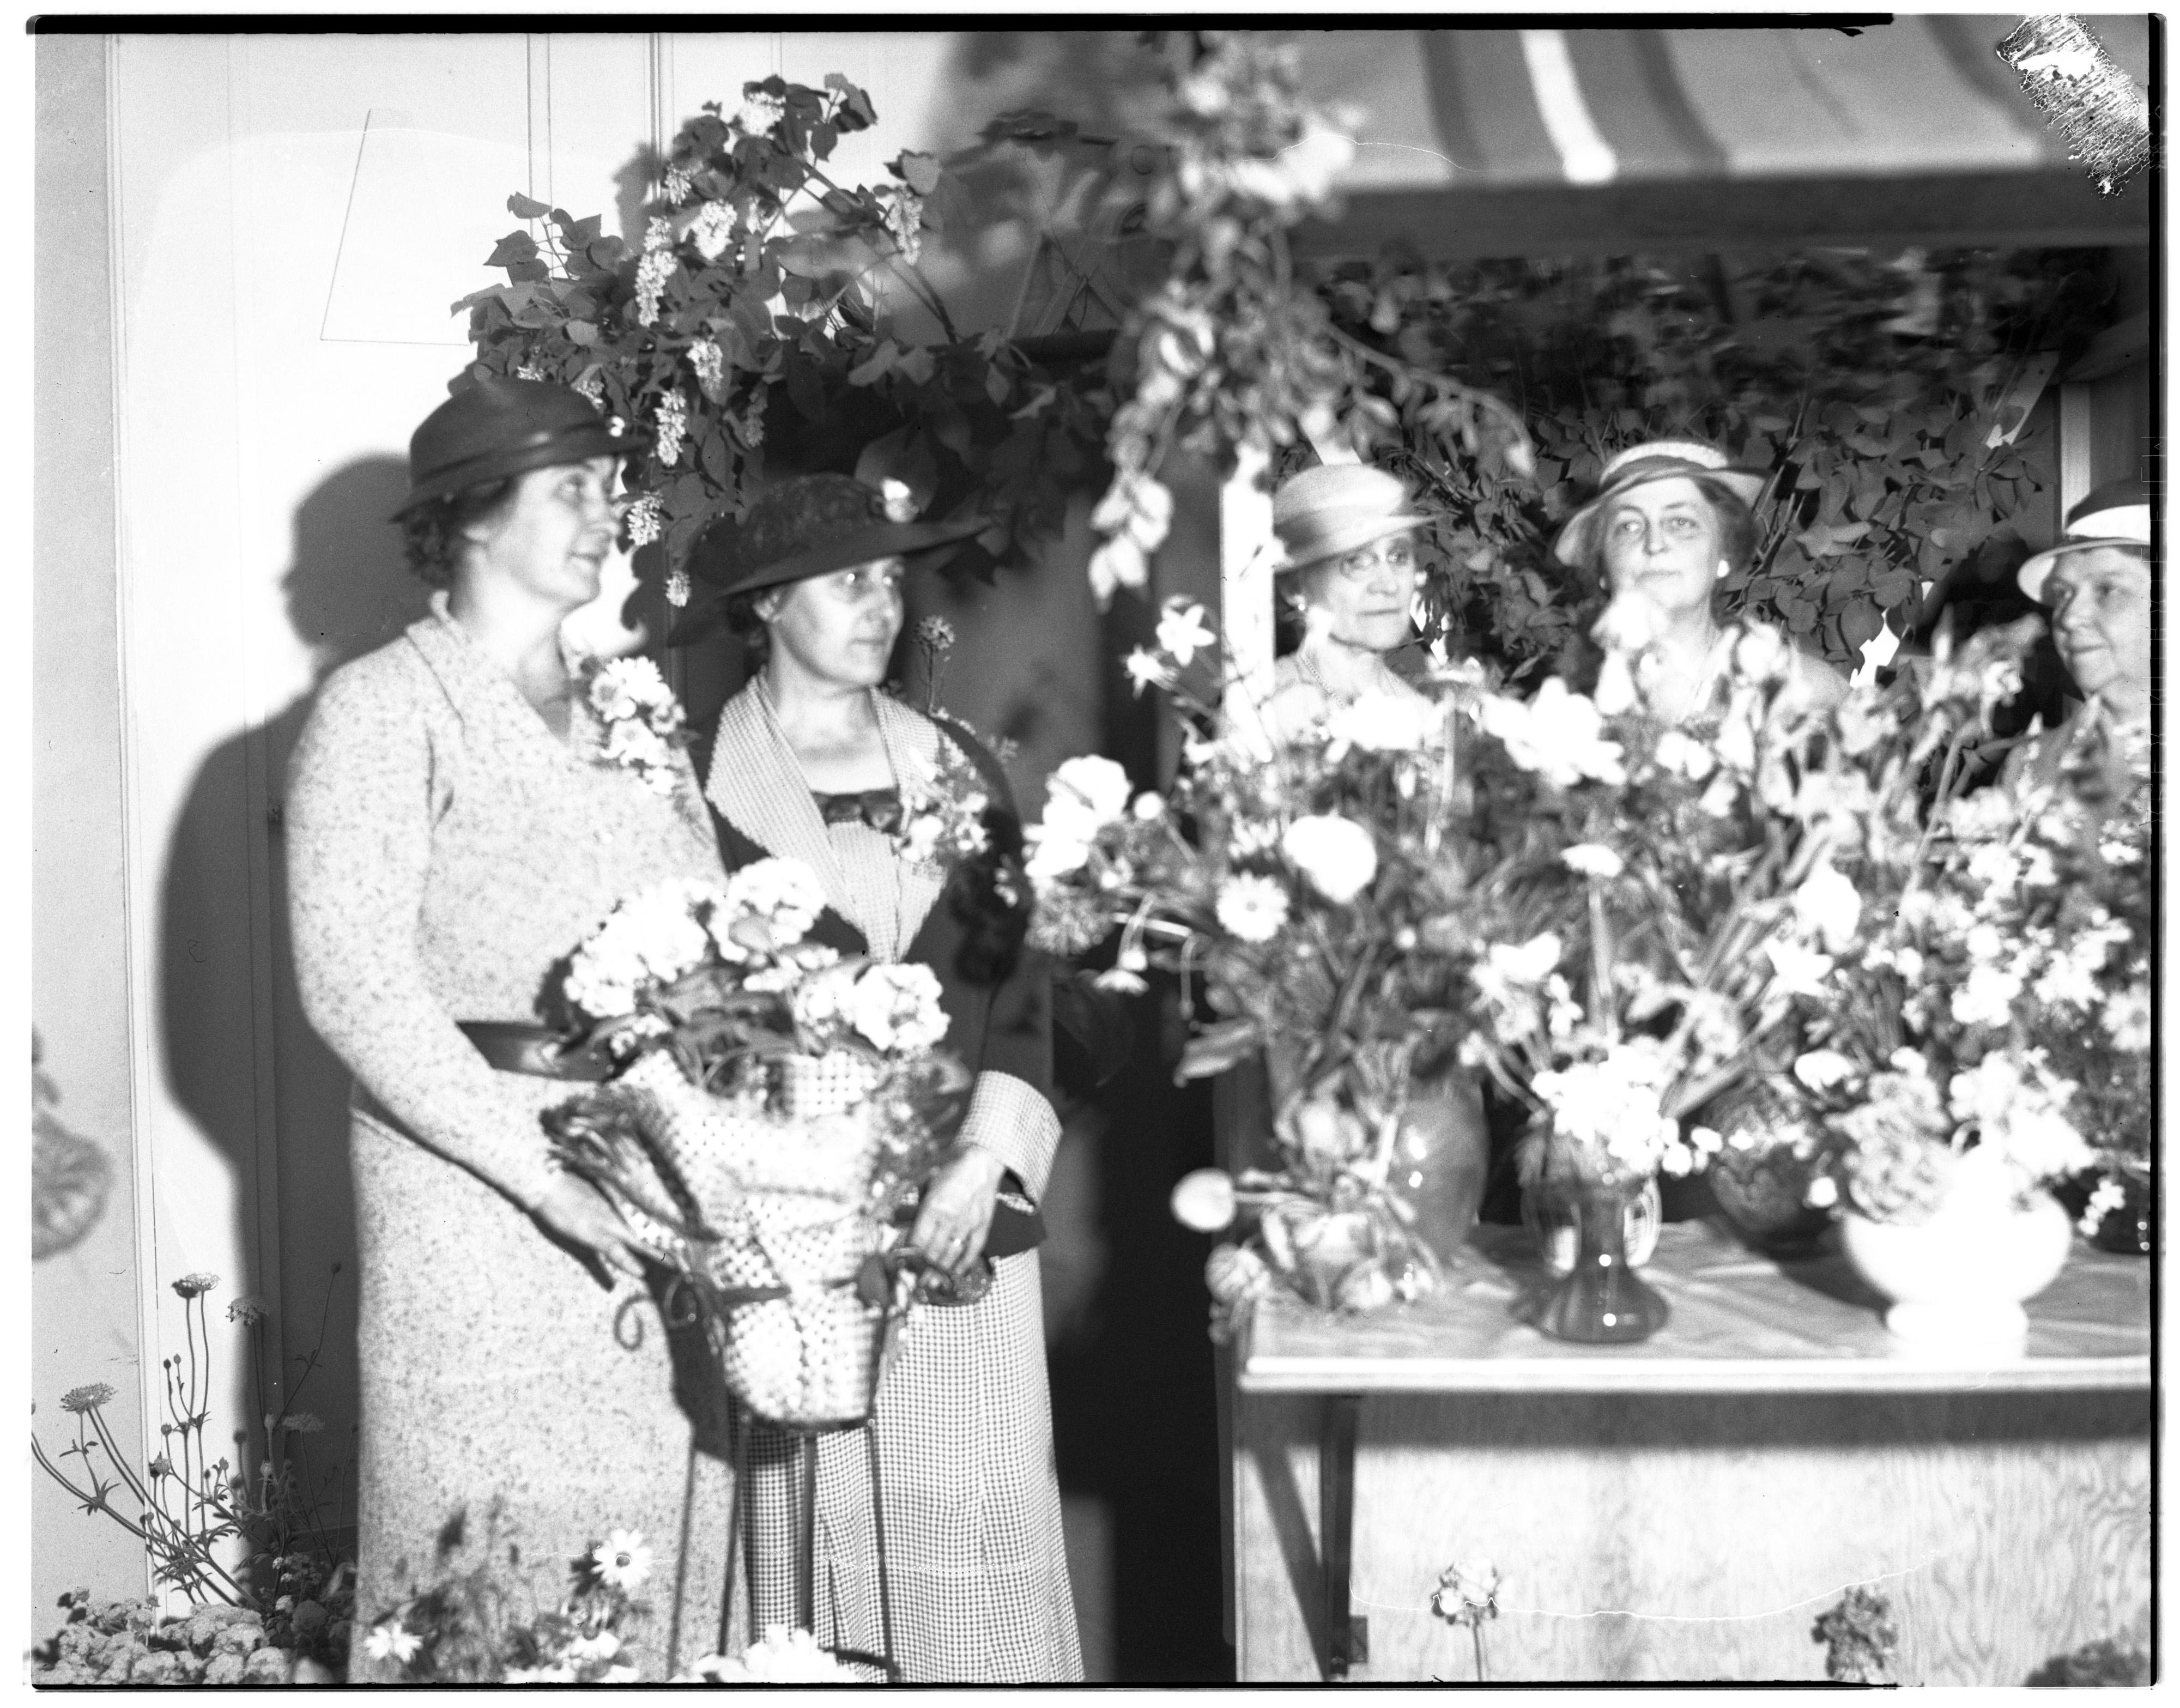 Ann Arbor Flower Show at the Masonic Temple, June, 1935 image